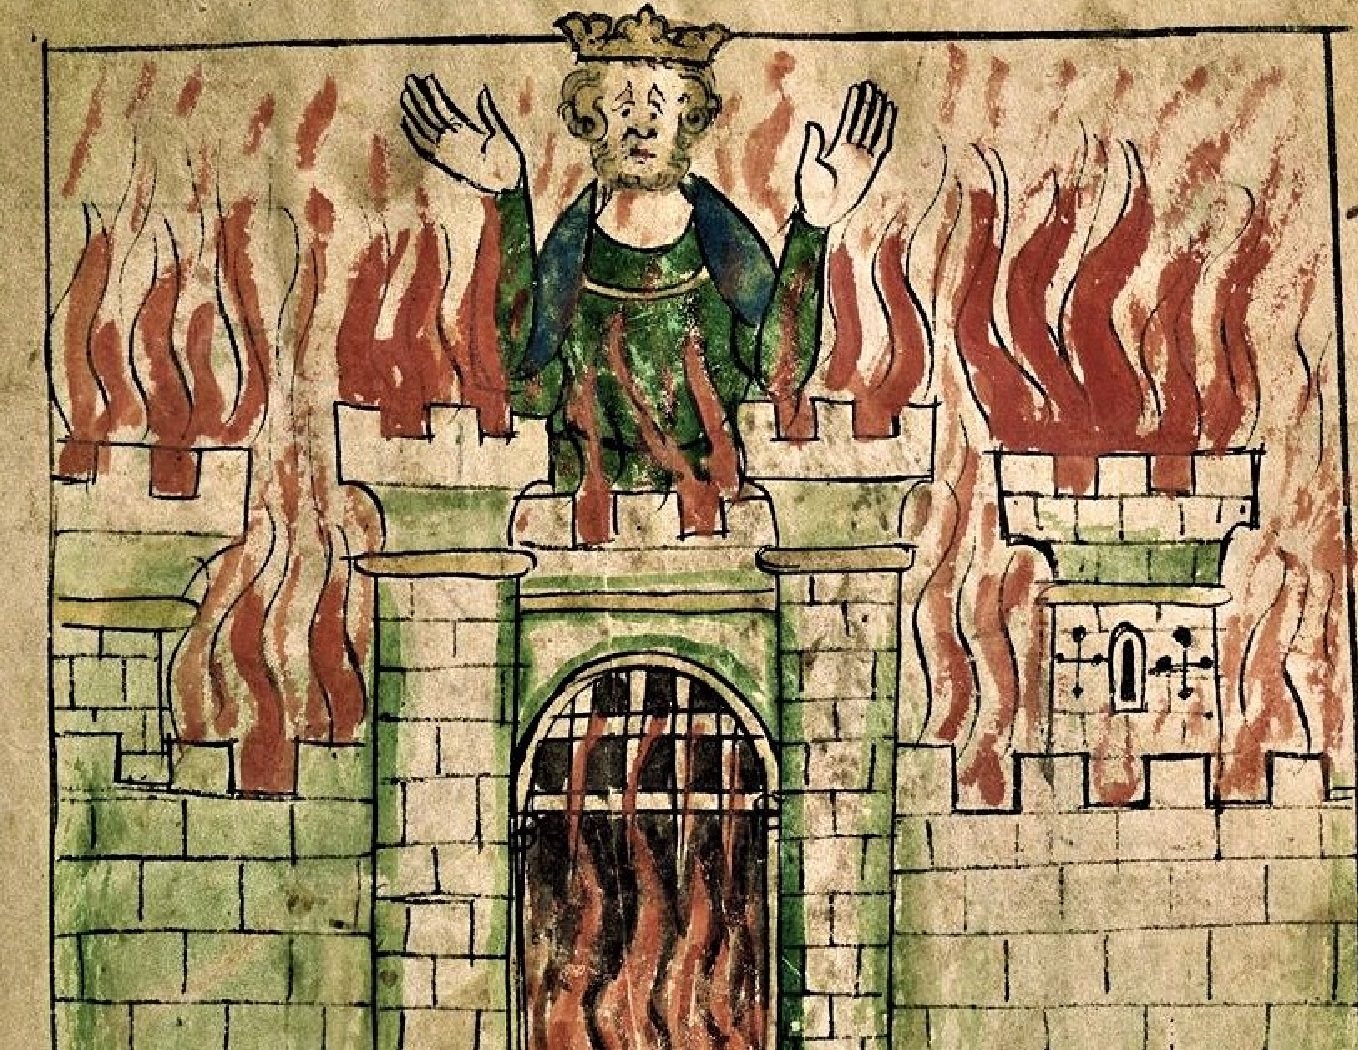 Vortigern, a half-legendary 5th-century British ruler, is depicted in his burning castle.